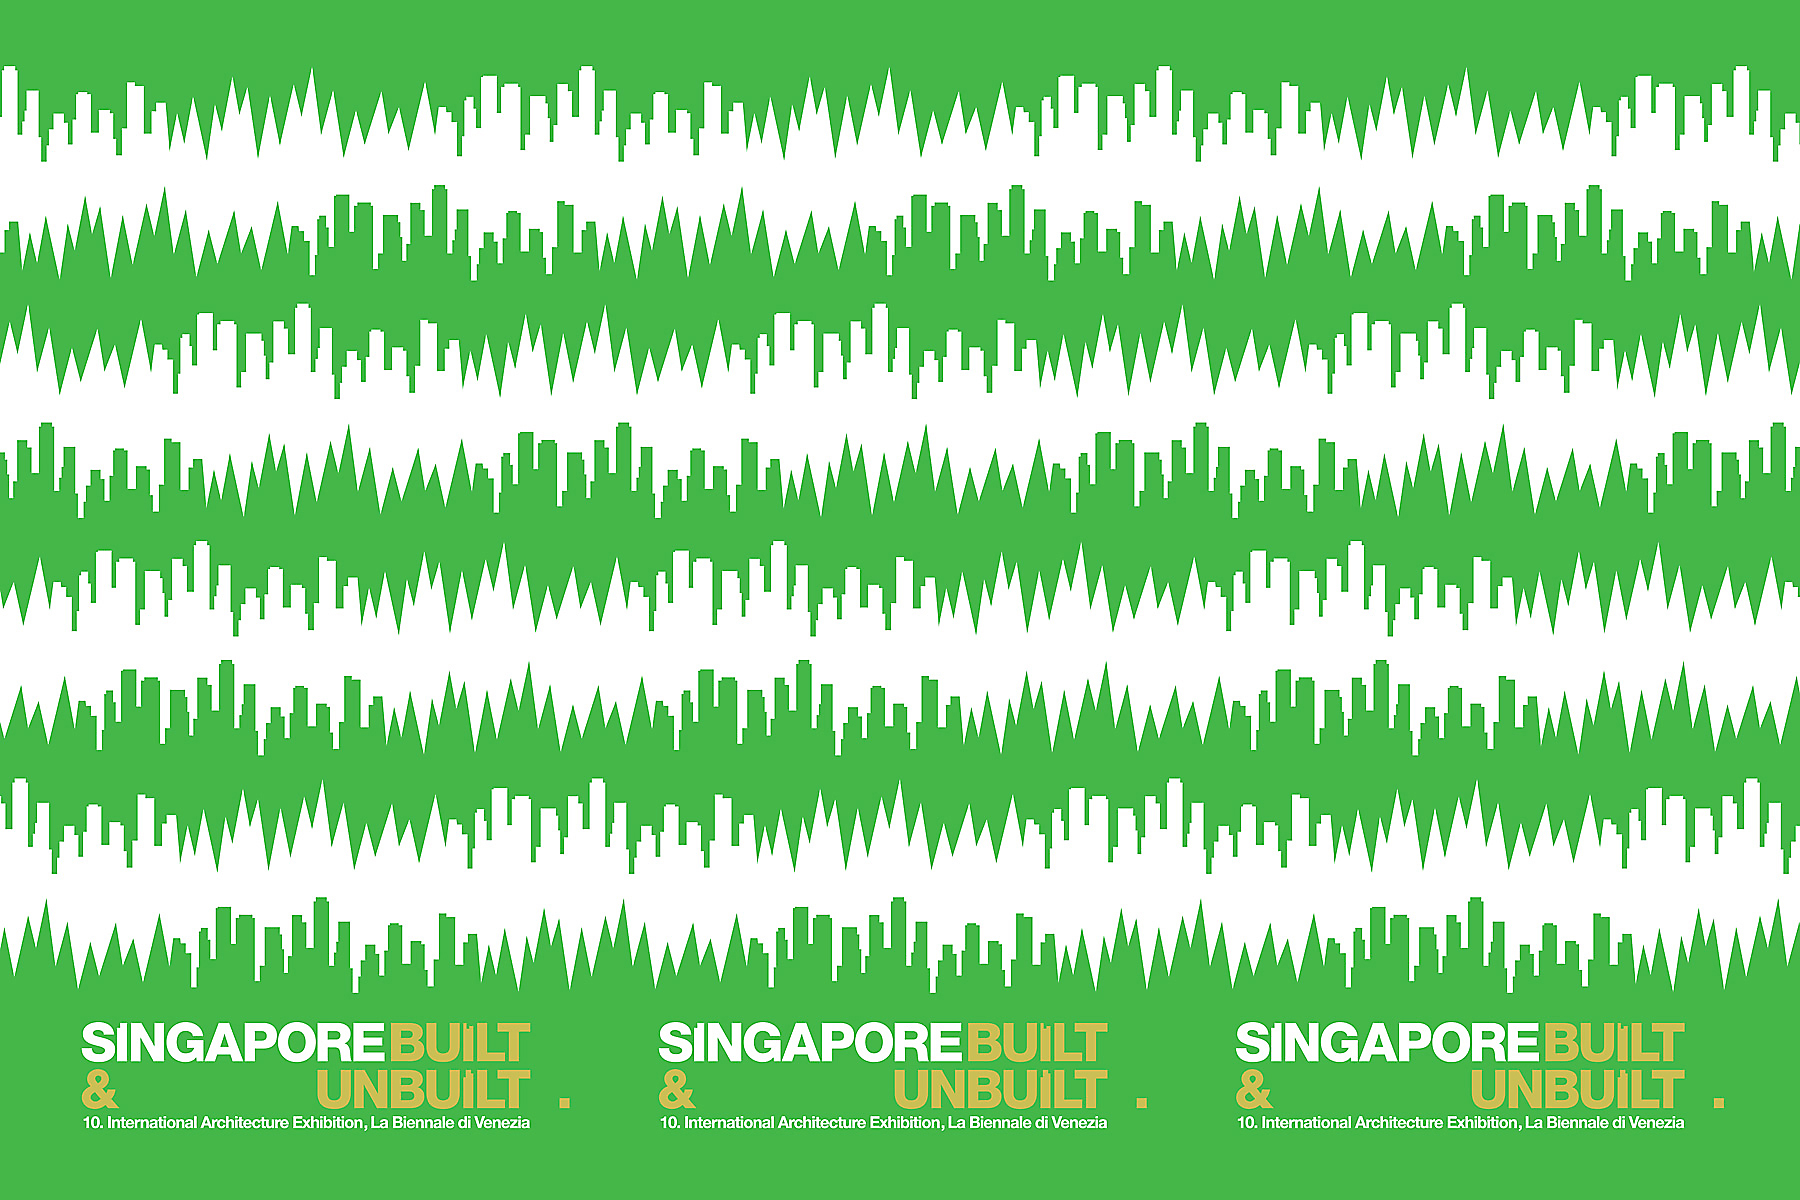 Singapore-Built-&-Unbuilt-with-Web-Guides-New_2